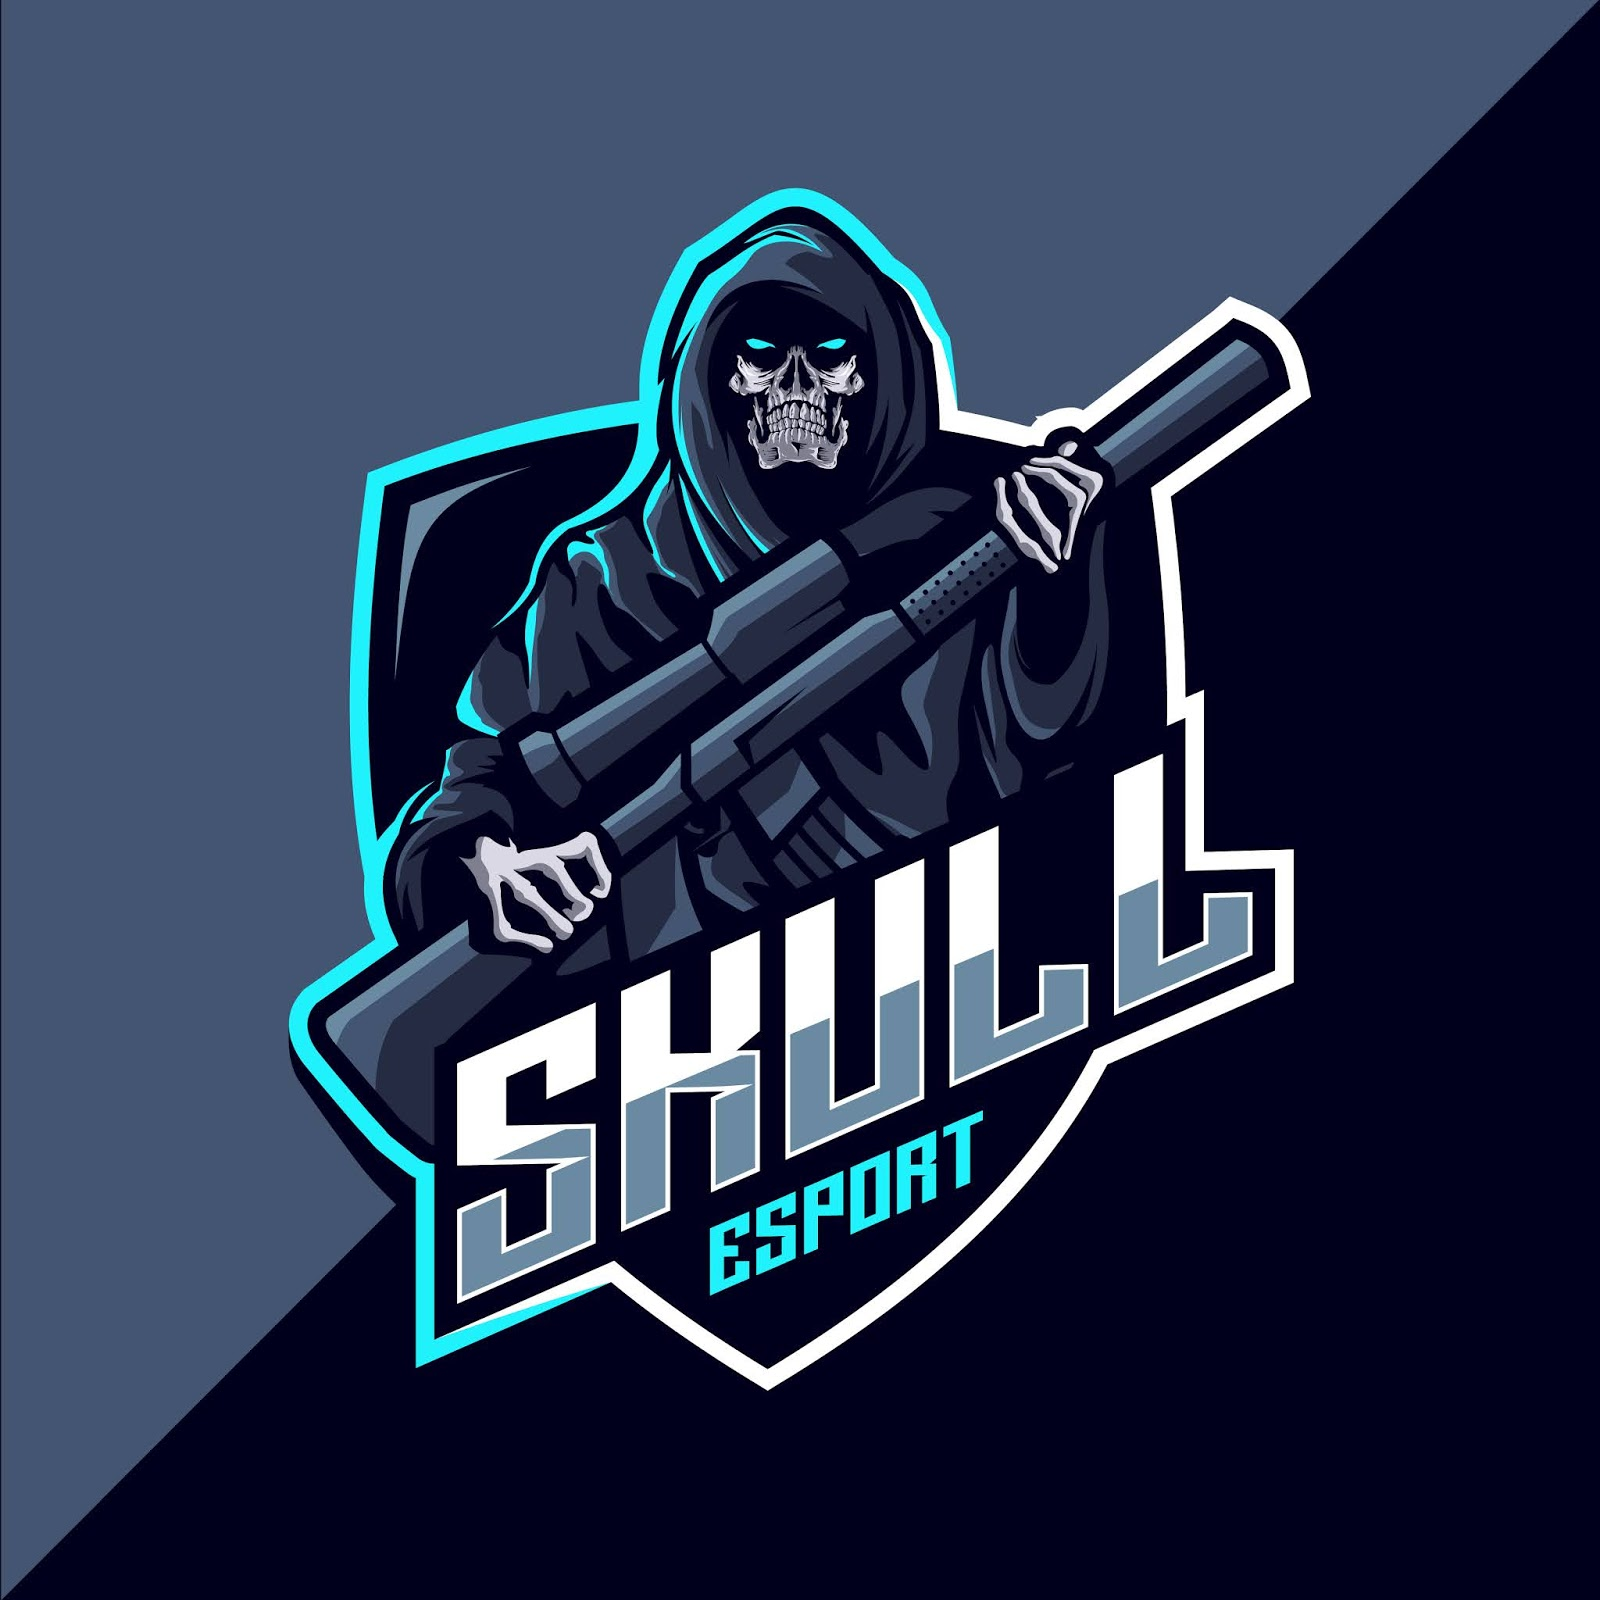 Reaper Skull With Guns Mascot Esport Logo Free Download Vector CDR, AI, EPS and PNG Formats